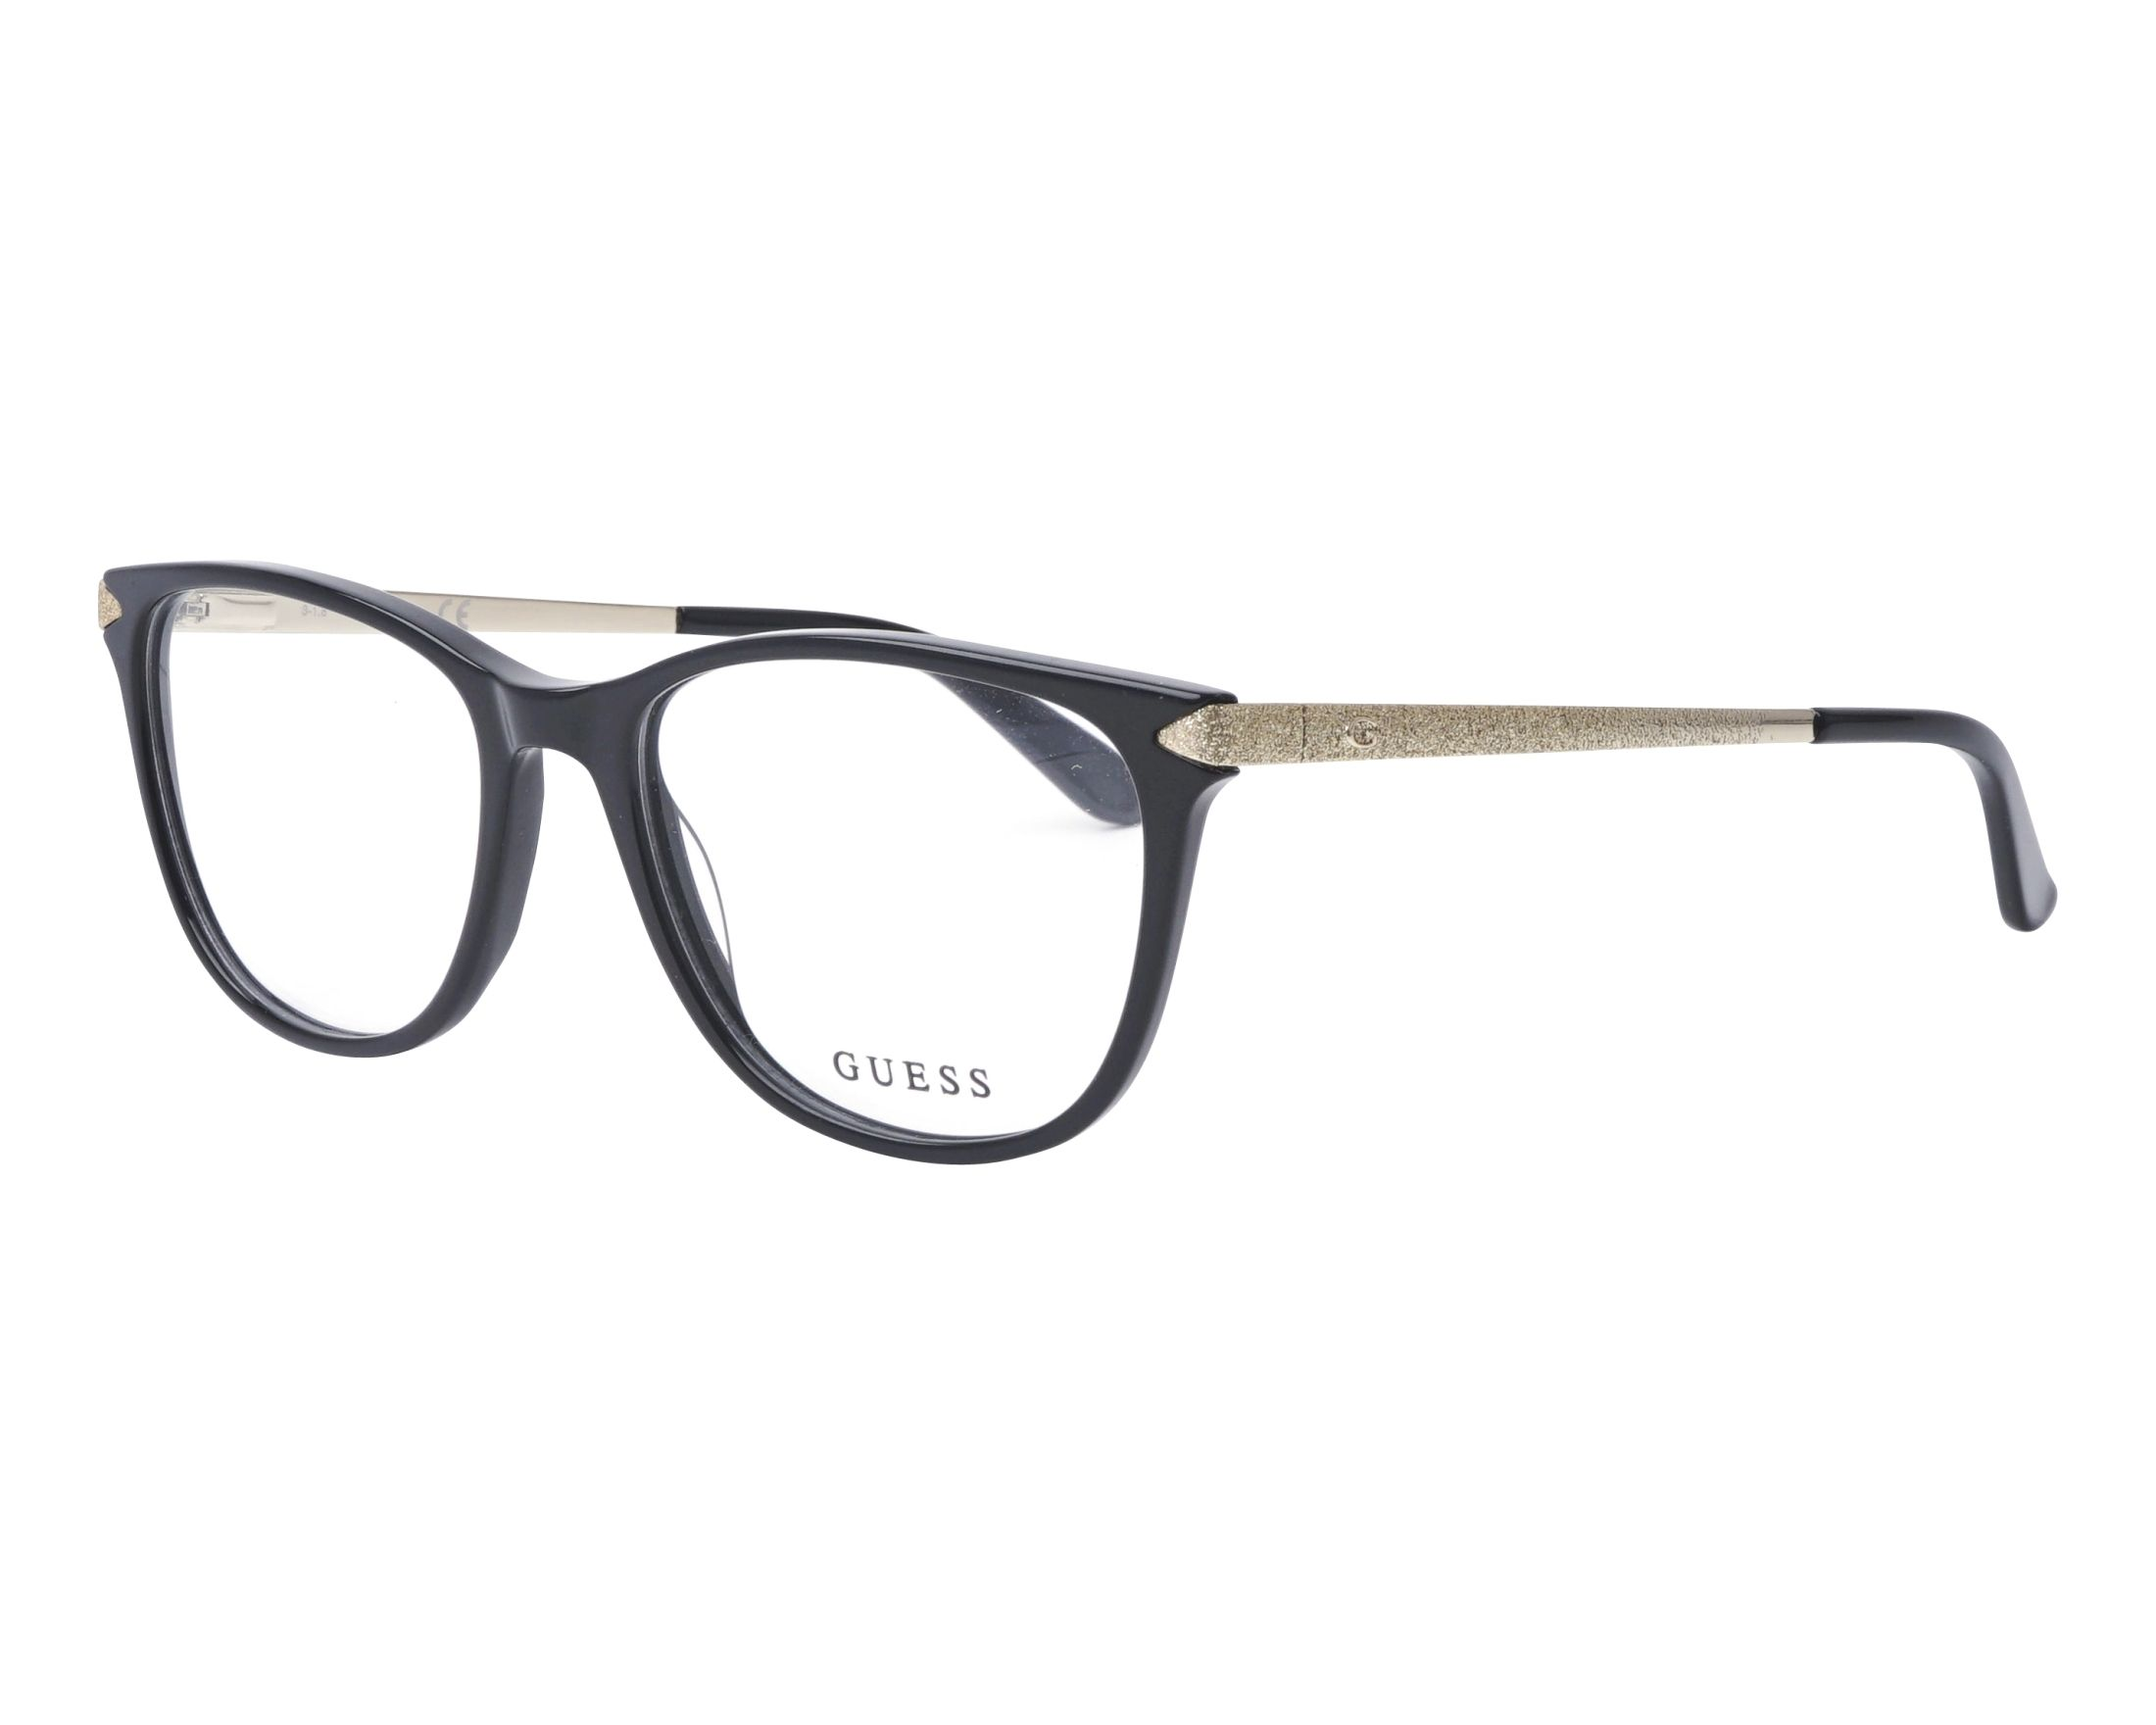 eyeglasses Guess GU-2684 005 53-17 Black Gold profile view